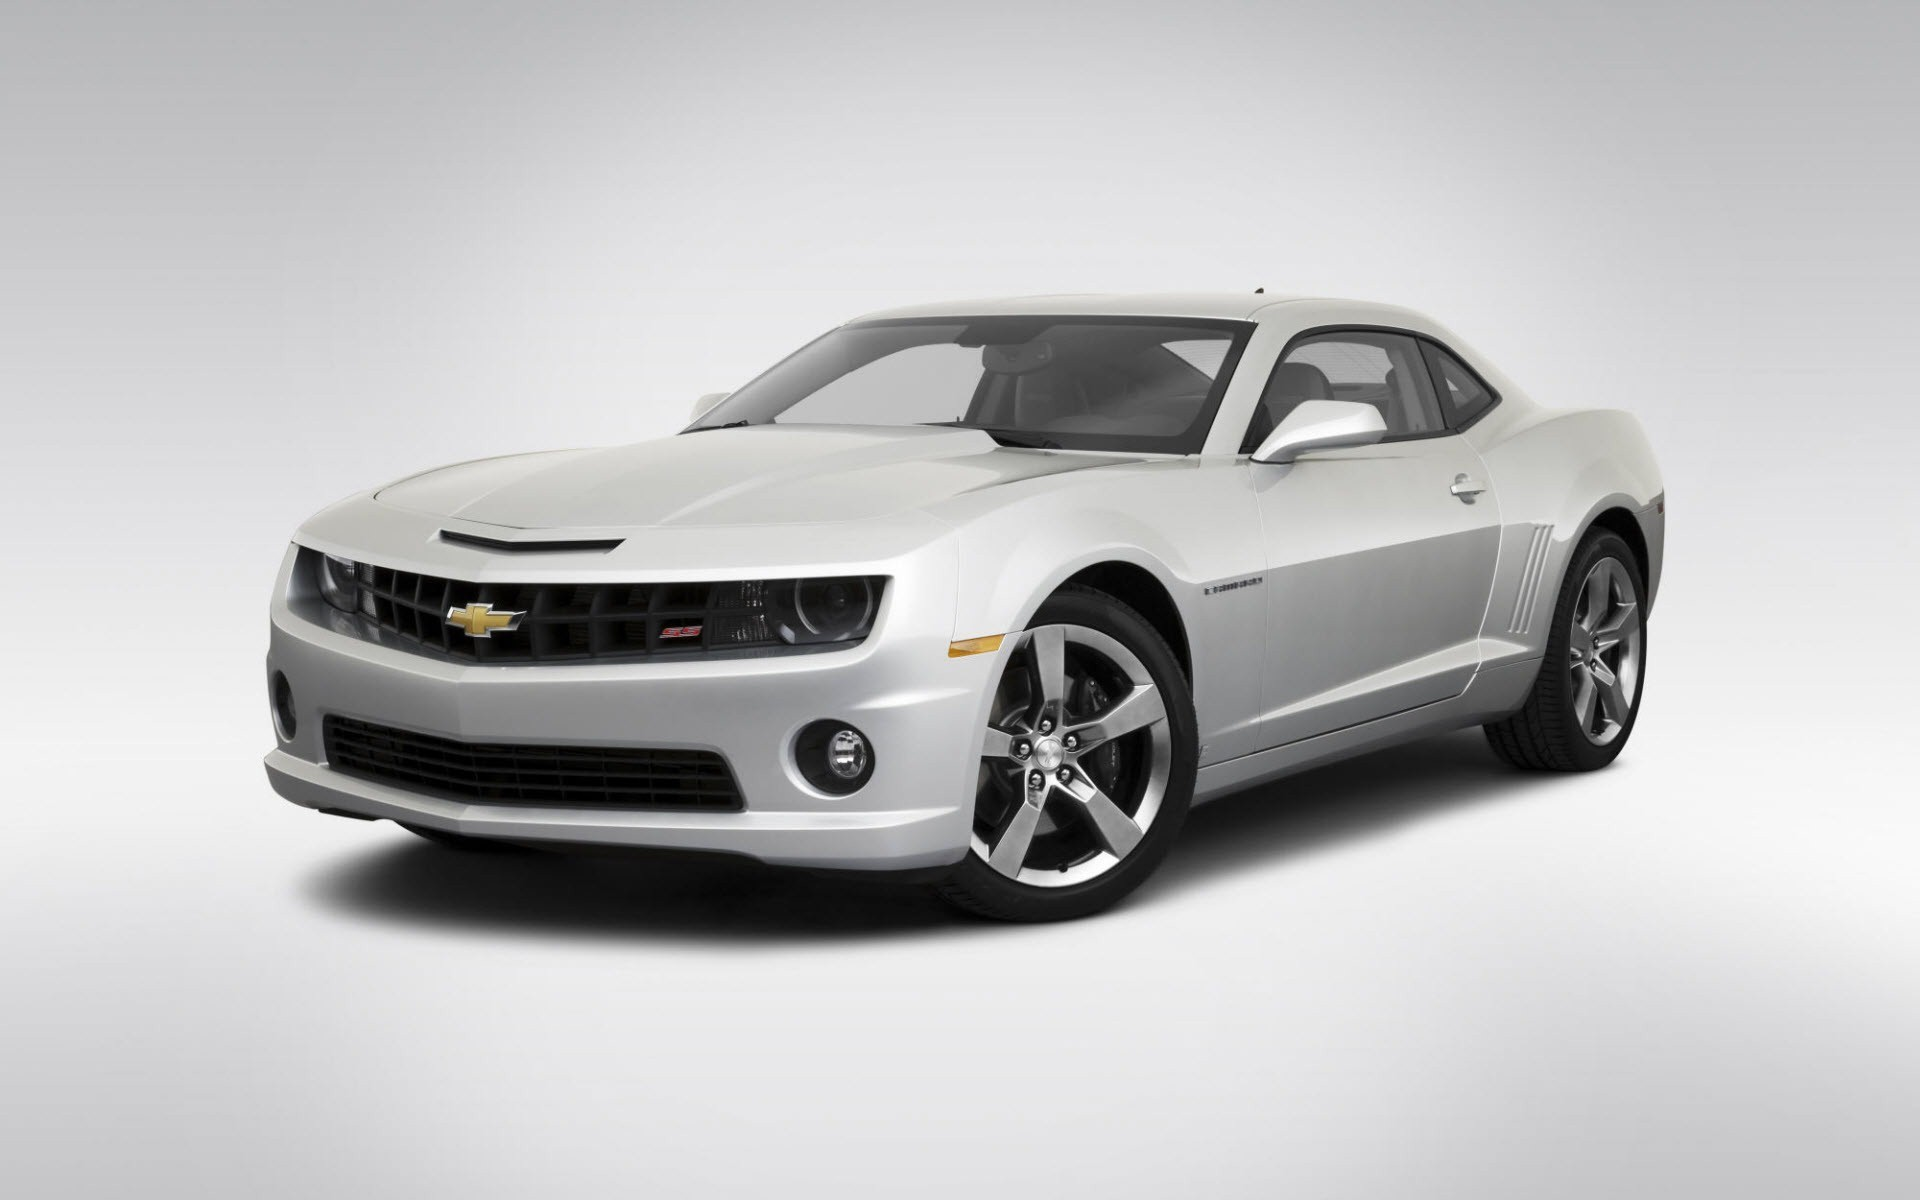 Silver Chevrolet Camaro 2SS Car Wallpapers HD Wallpapers 1920x1200